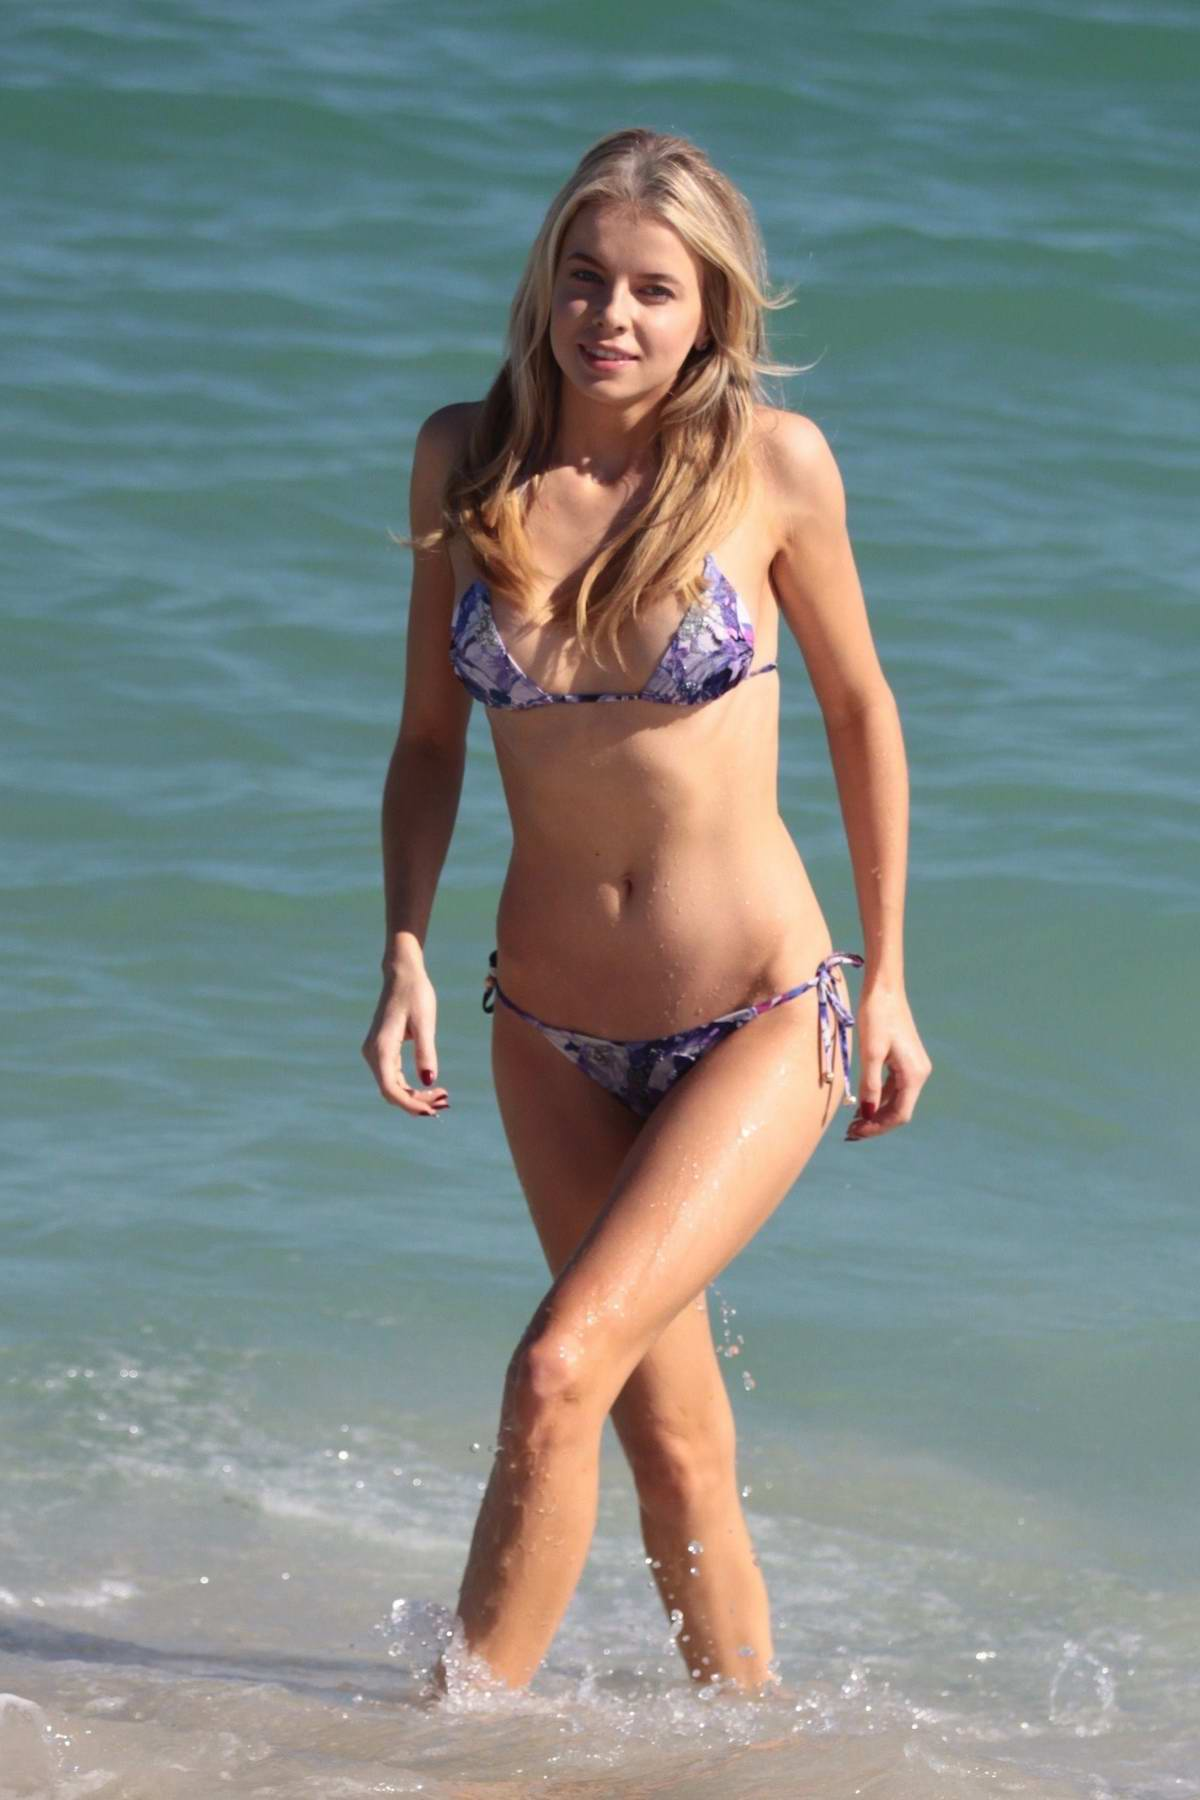 Louisa Warwick in a violet bikini enjoying a day on the beach in Miami, Florida